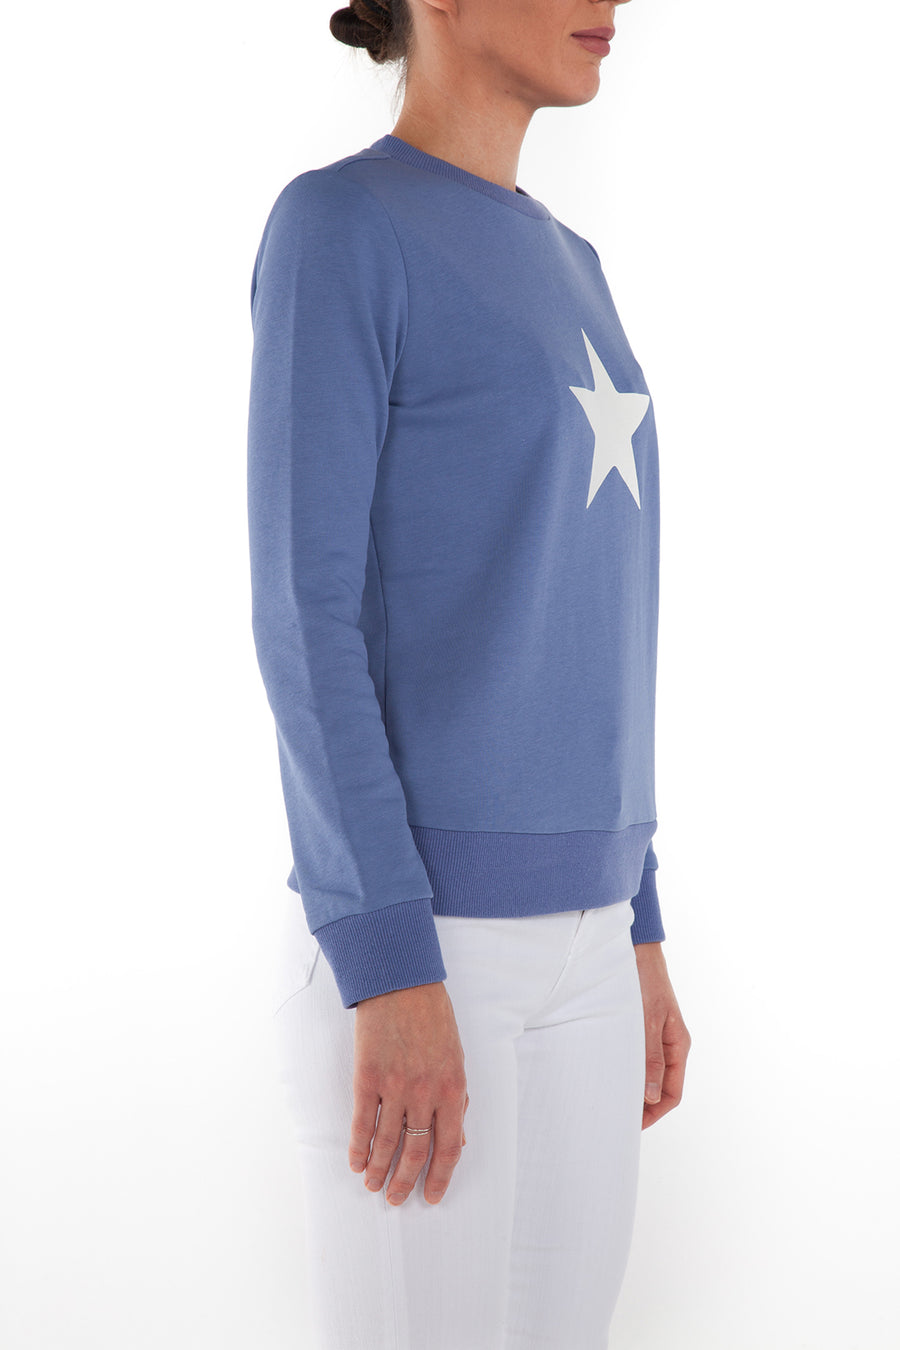 Sancia Star Sweater